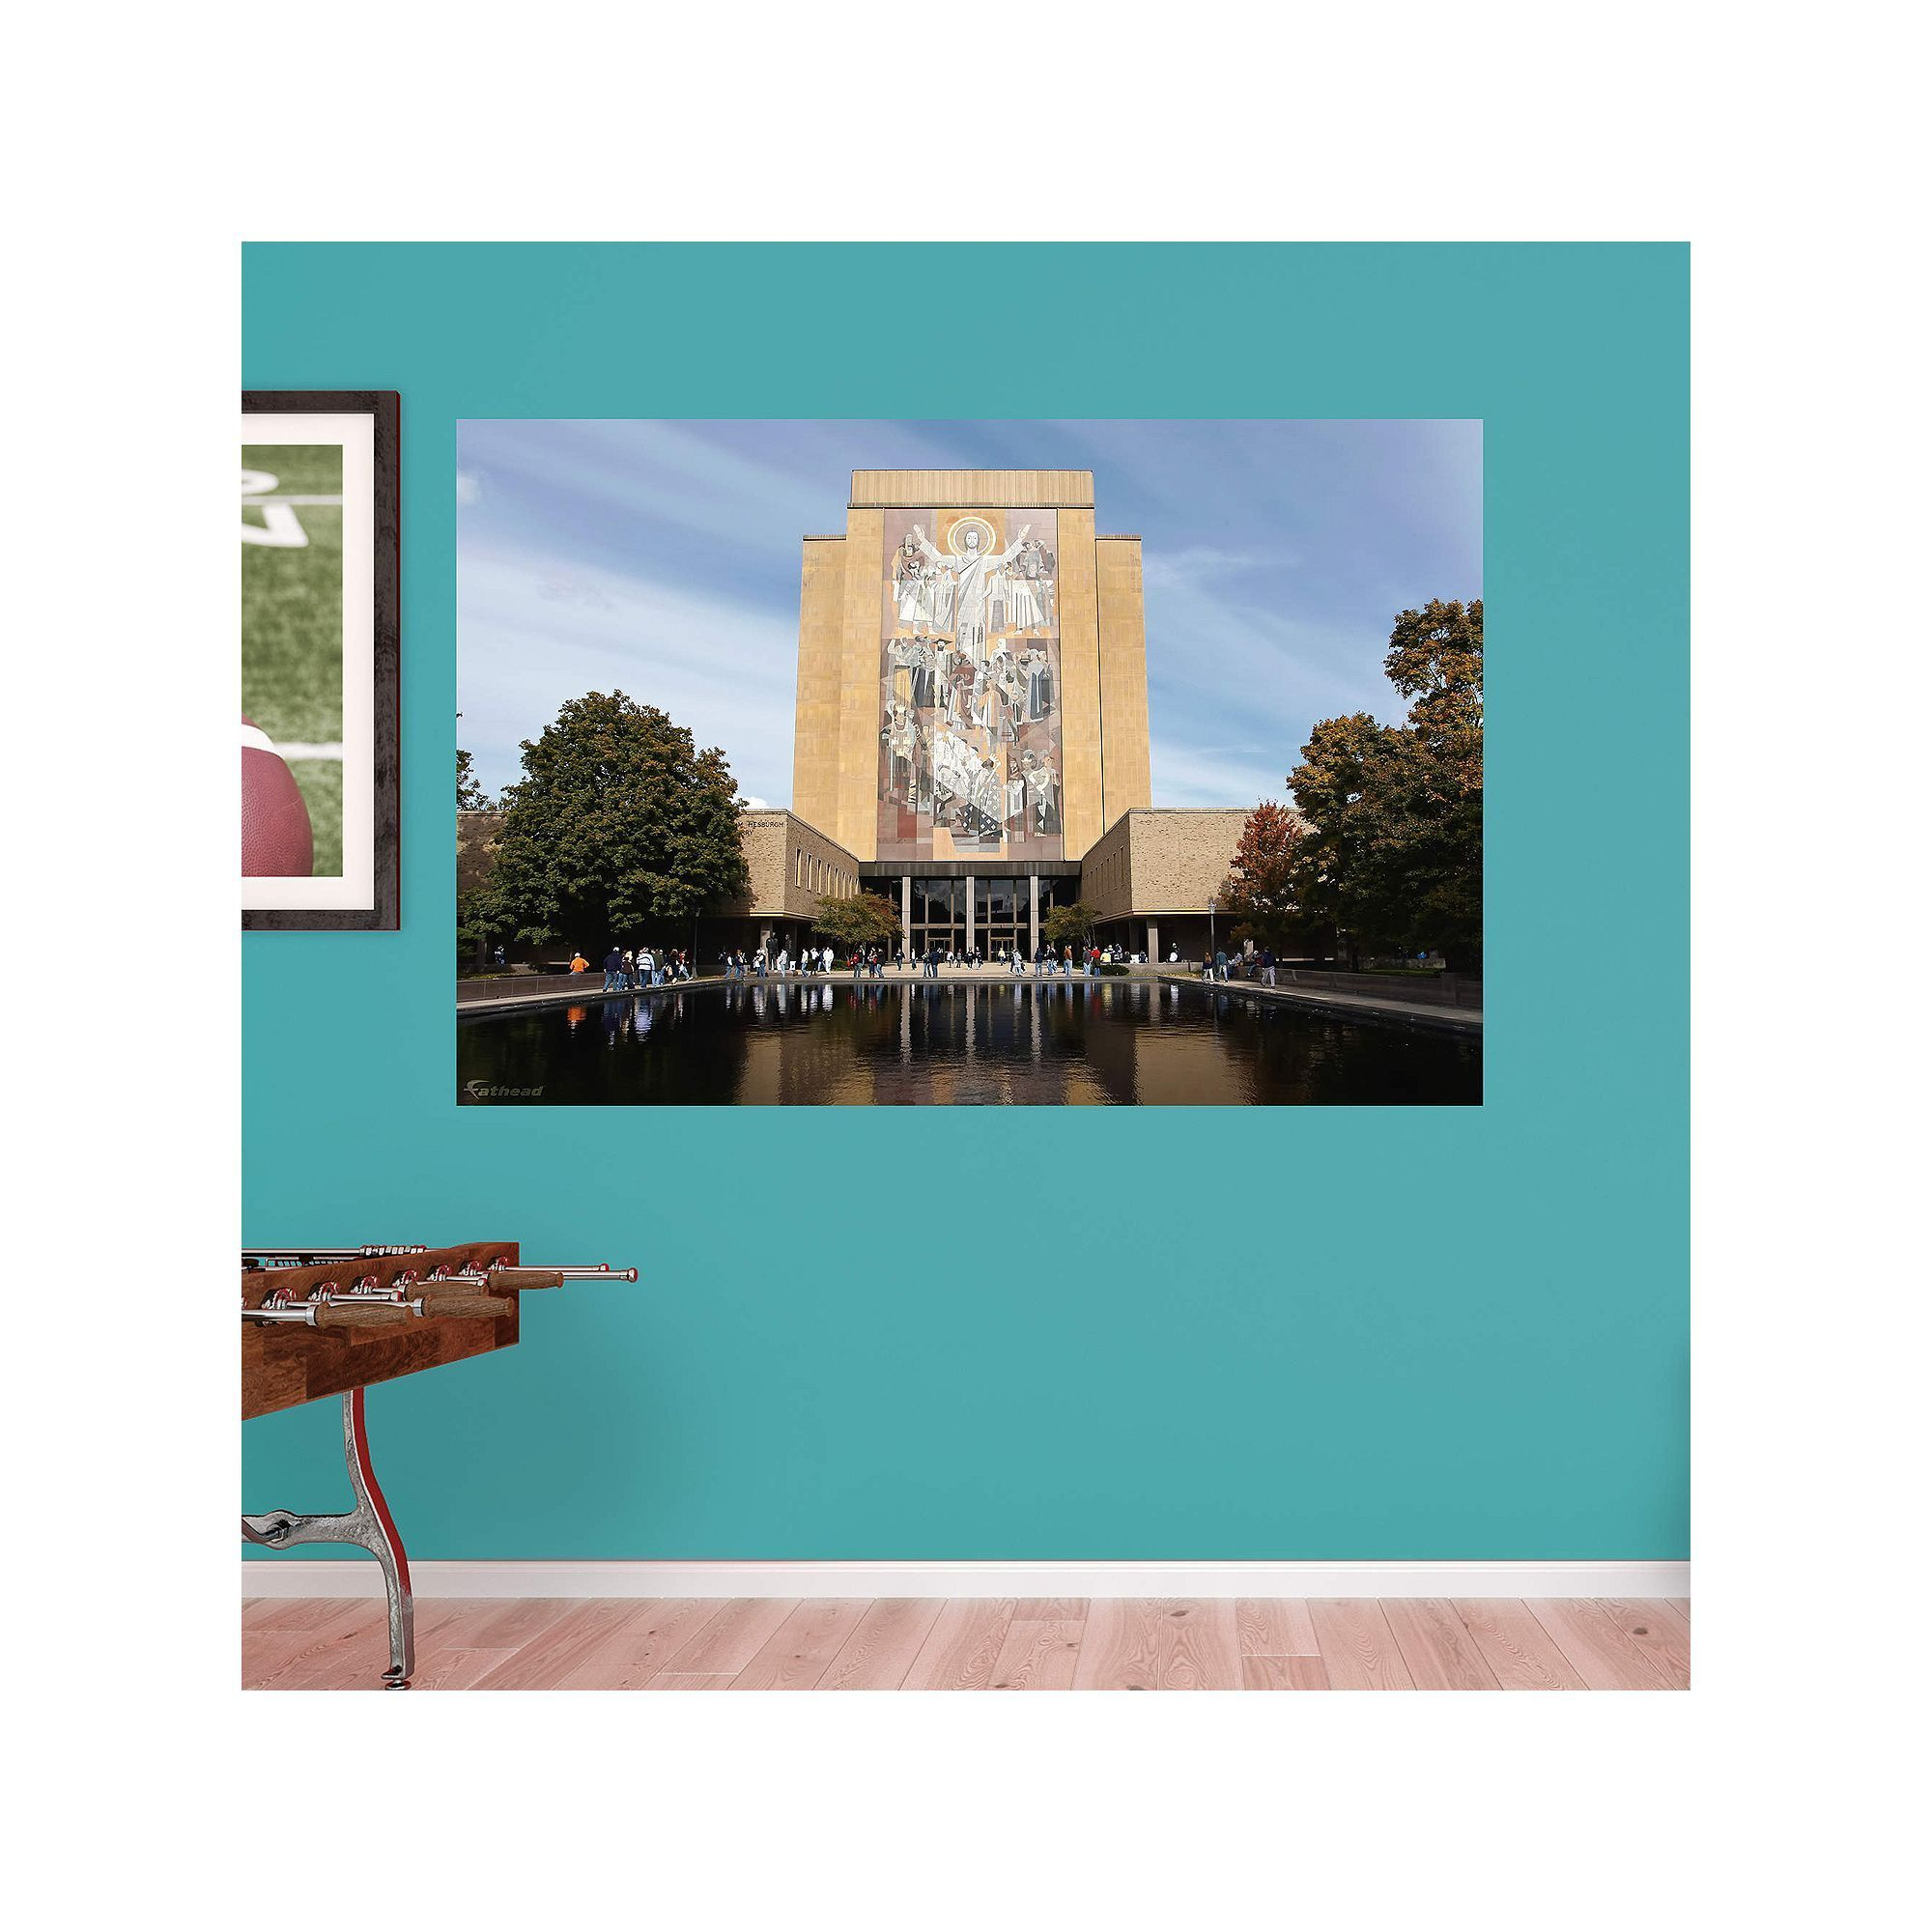 Notre Dame Fighting Irish Hesburgh Library Mural Wall Decal By Fathead,  Multicolor